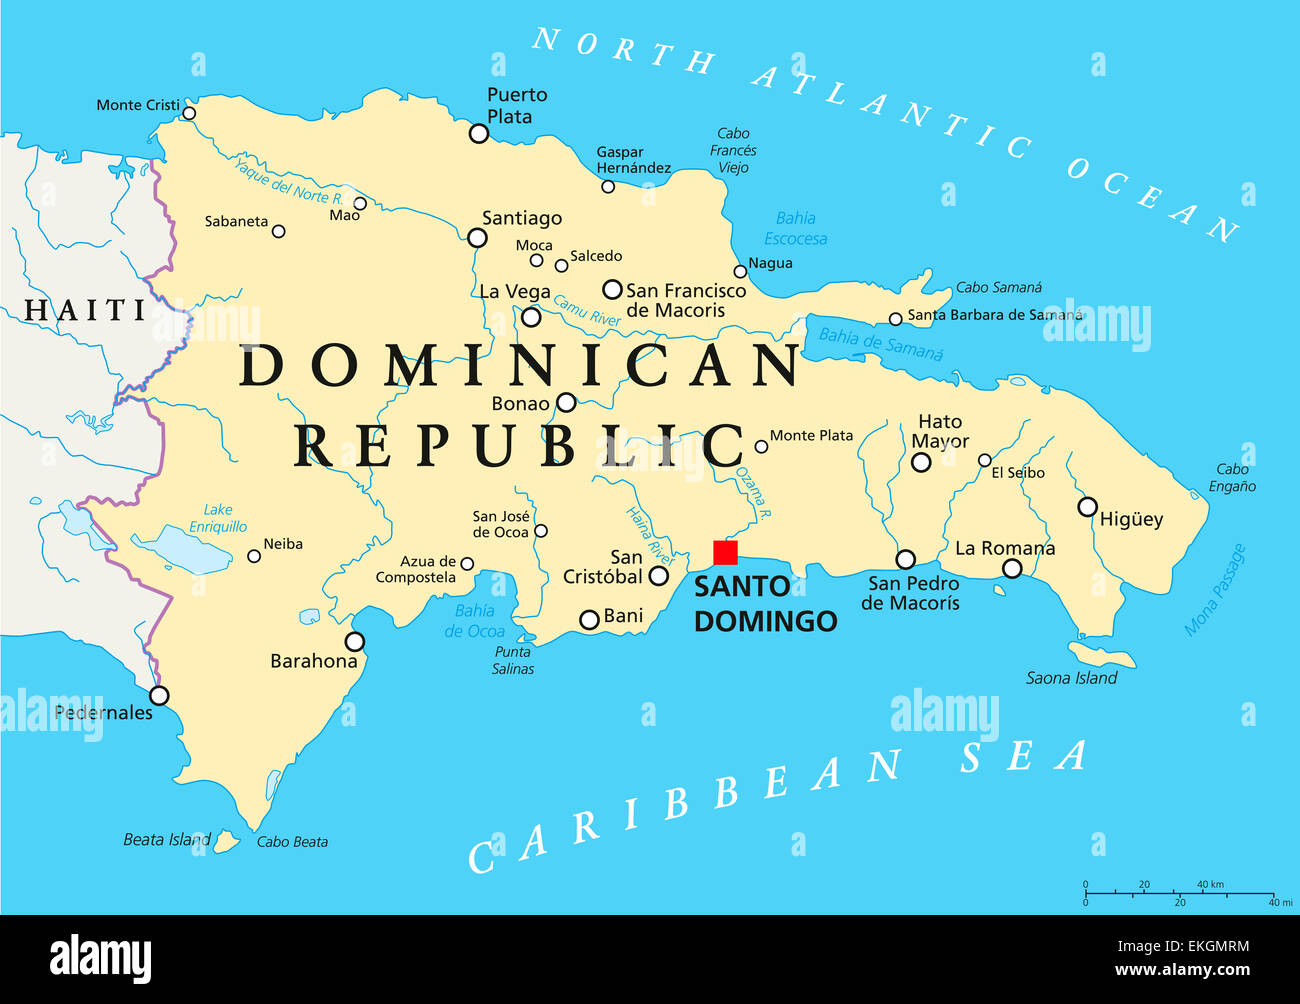 Dominican Republic Maps | Maps of Dominican Republic